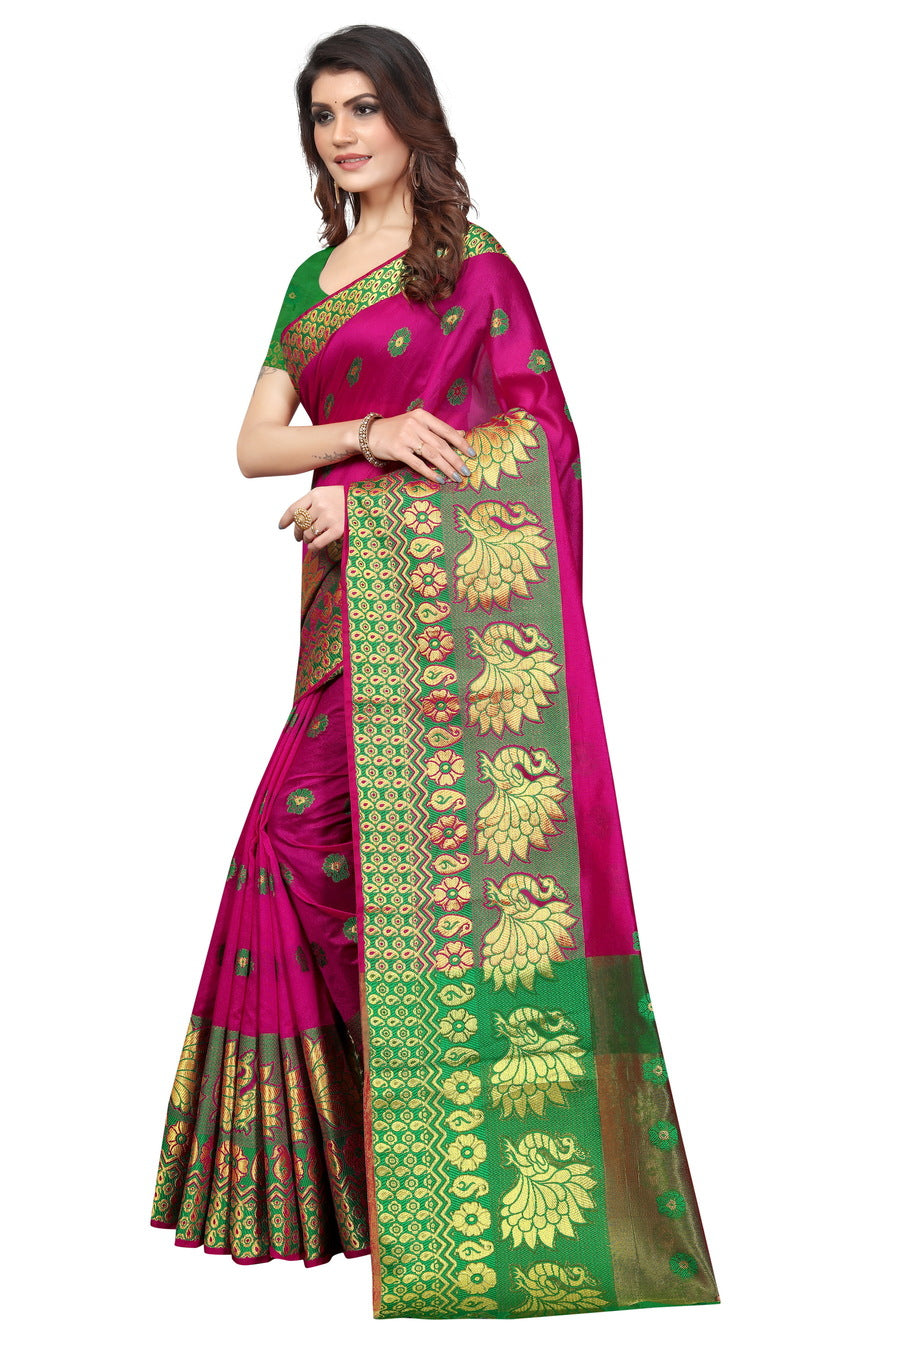 Ladies Peacock Printed Kota Silk Saree, Length: 6.3 m